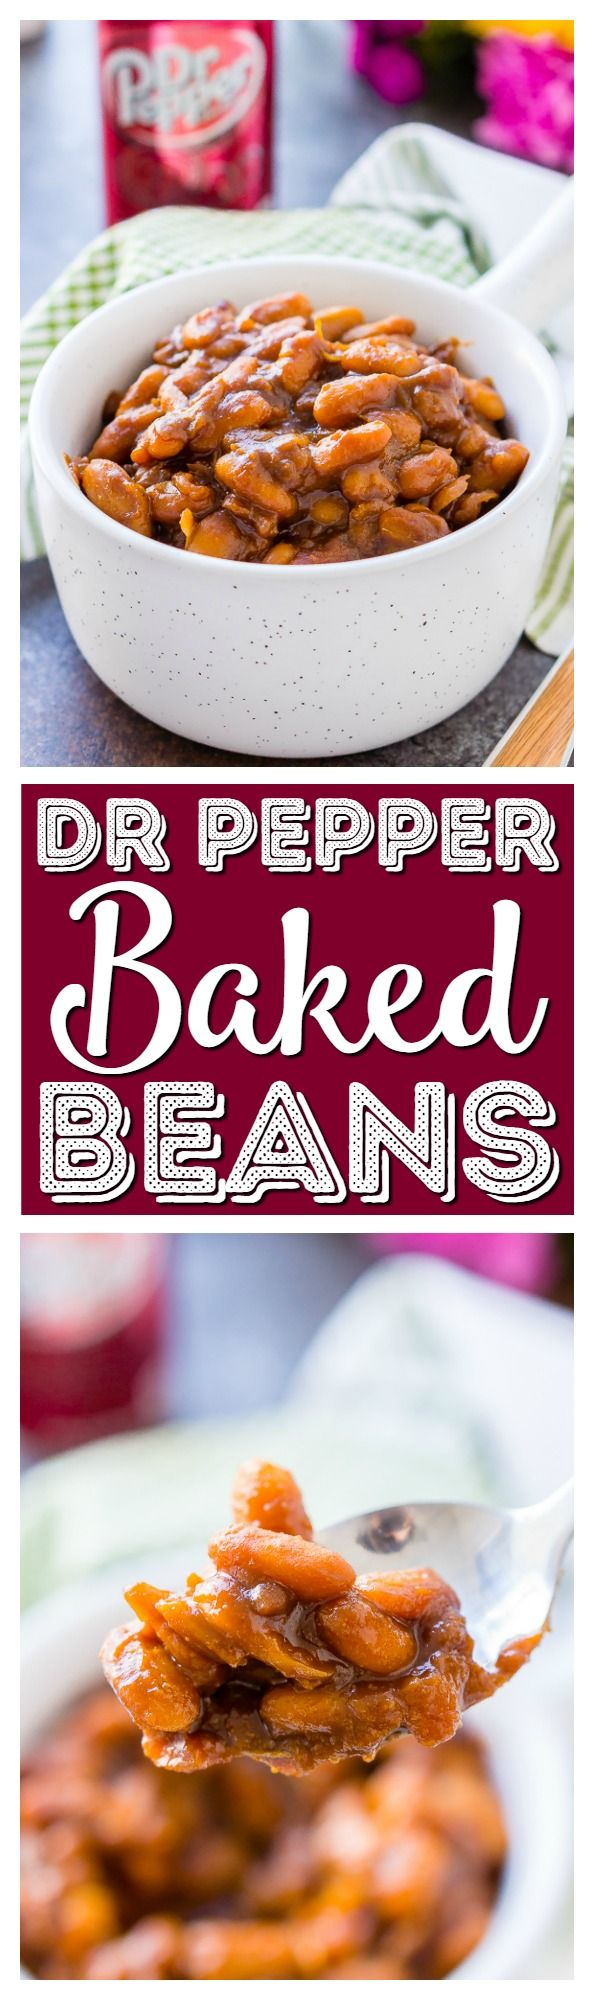 These Dr Pepper Baked Beans are a sweet and delicious side dish that's ready in less than an hour! Perfect for BBQ's and game day parties! via @sugarandsoulco